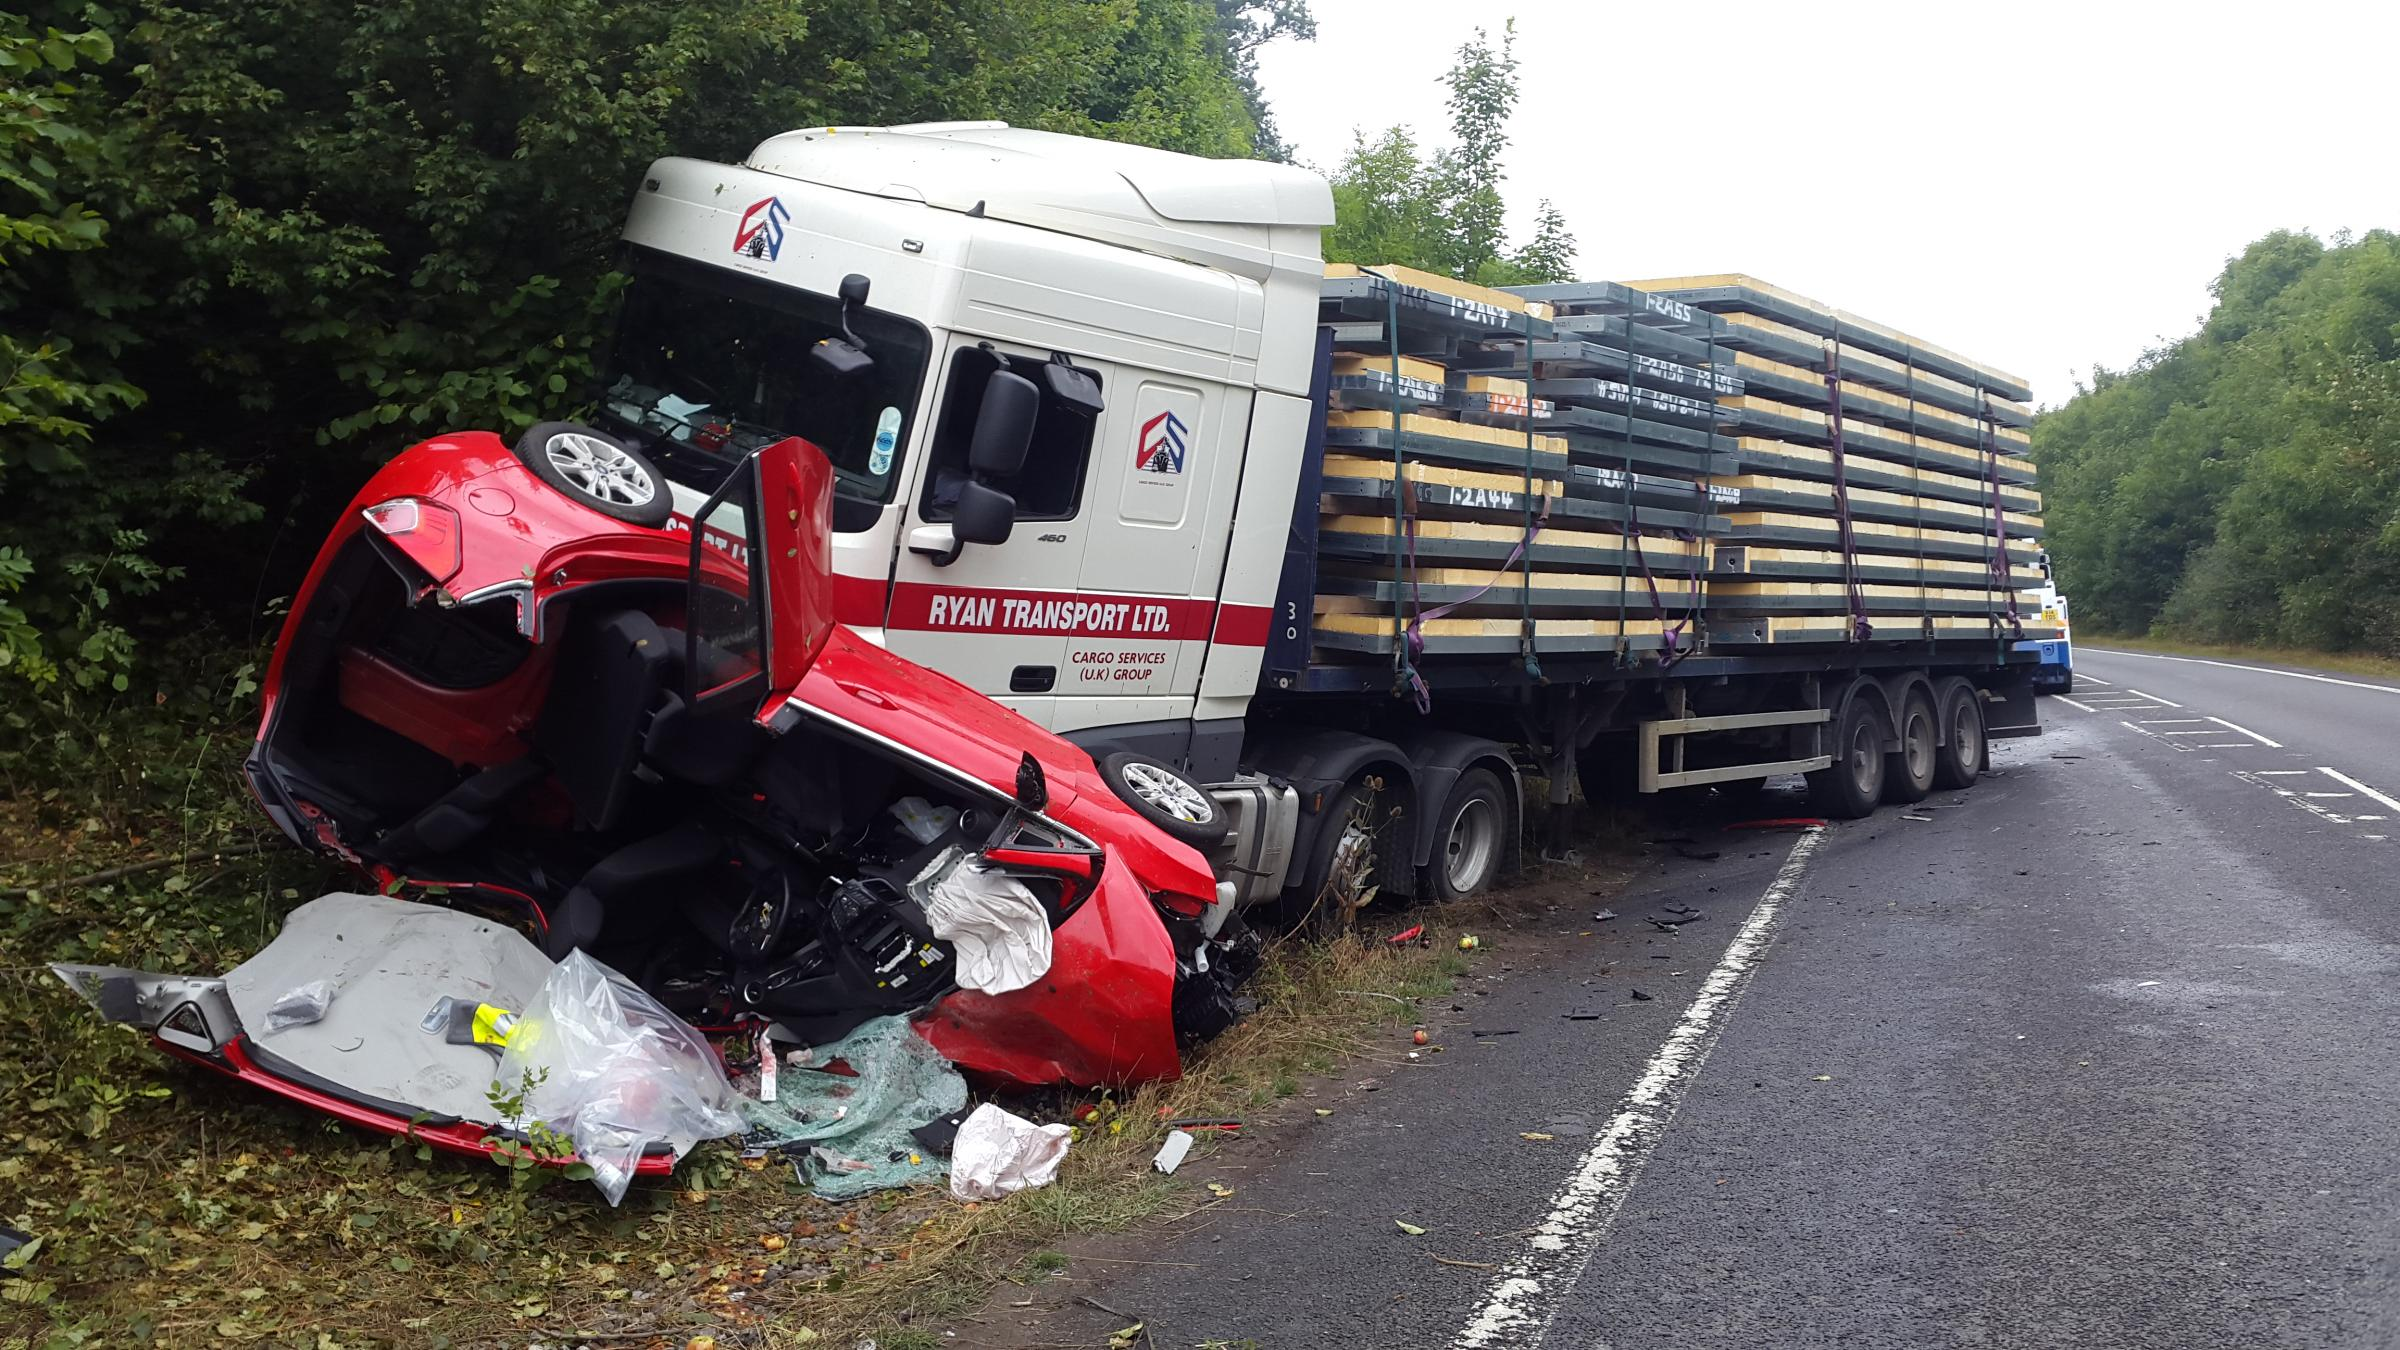 UPDATED A358 reopened as man in serious but stable condition after